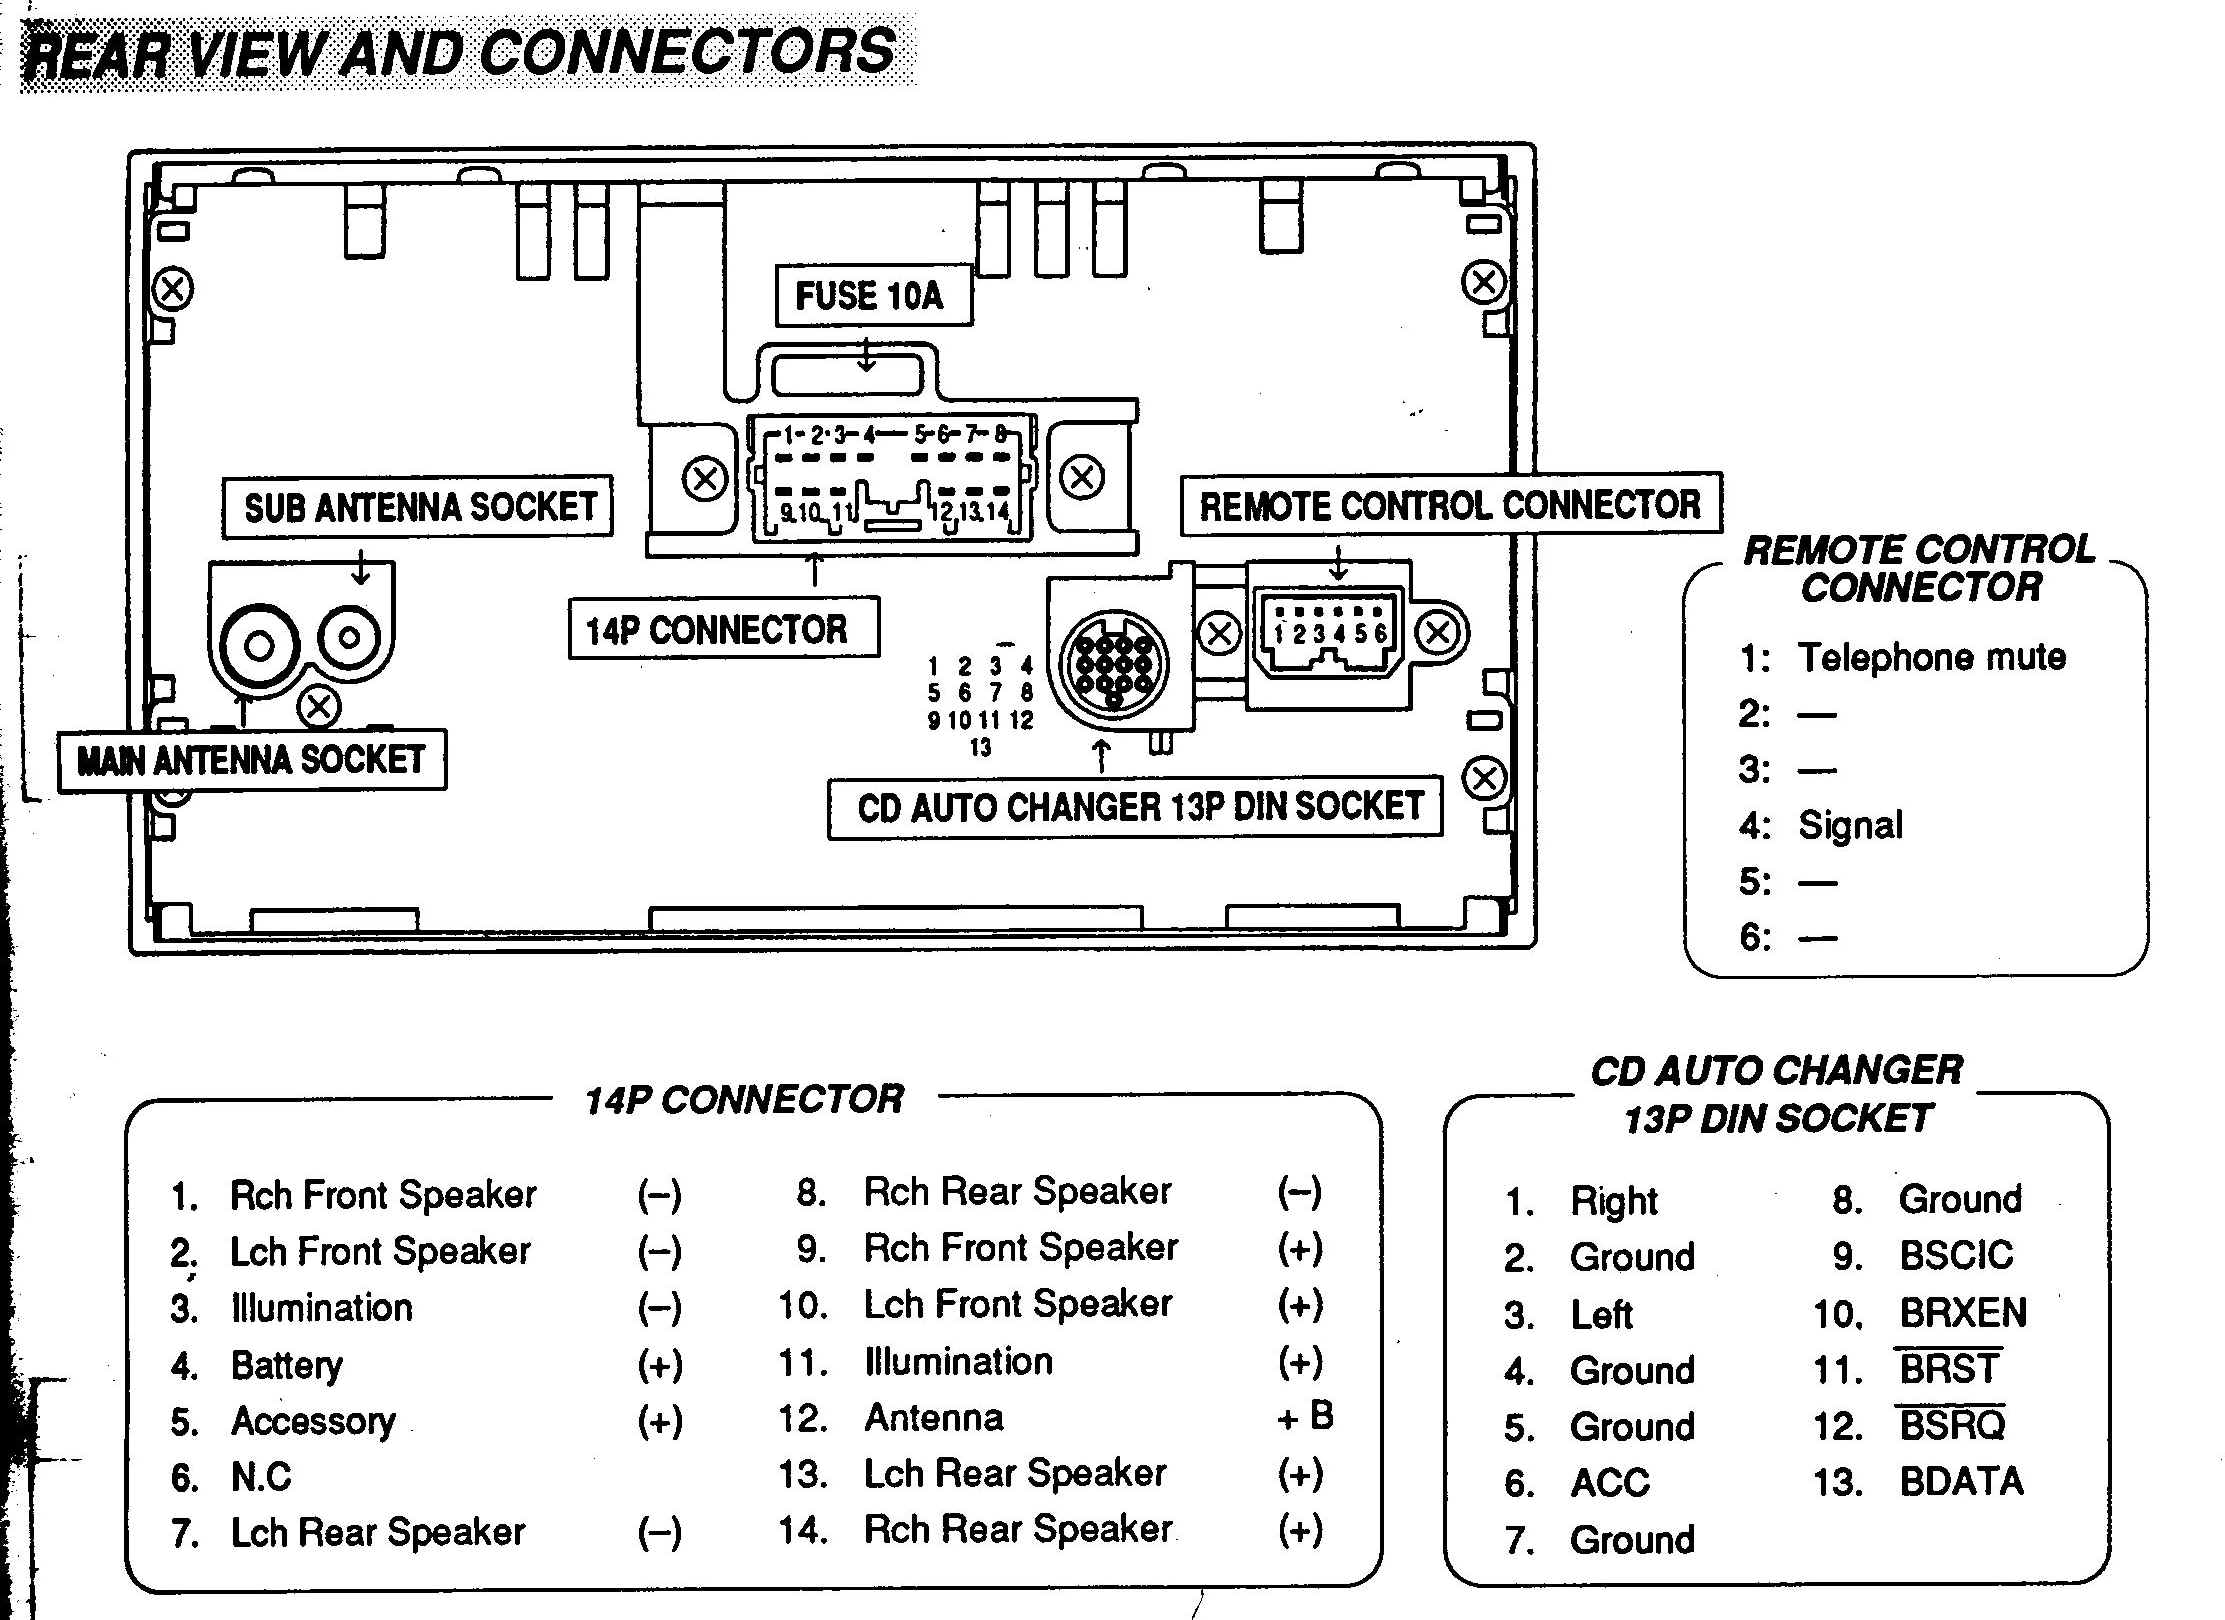 WireHarnessMit121003 diagram of car stereo wiring diagram of car seats \u2022 wiring car radio wiring diagrams free at soozxer.org